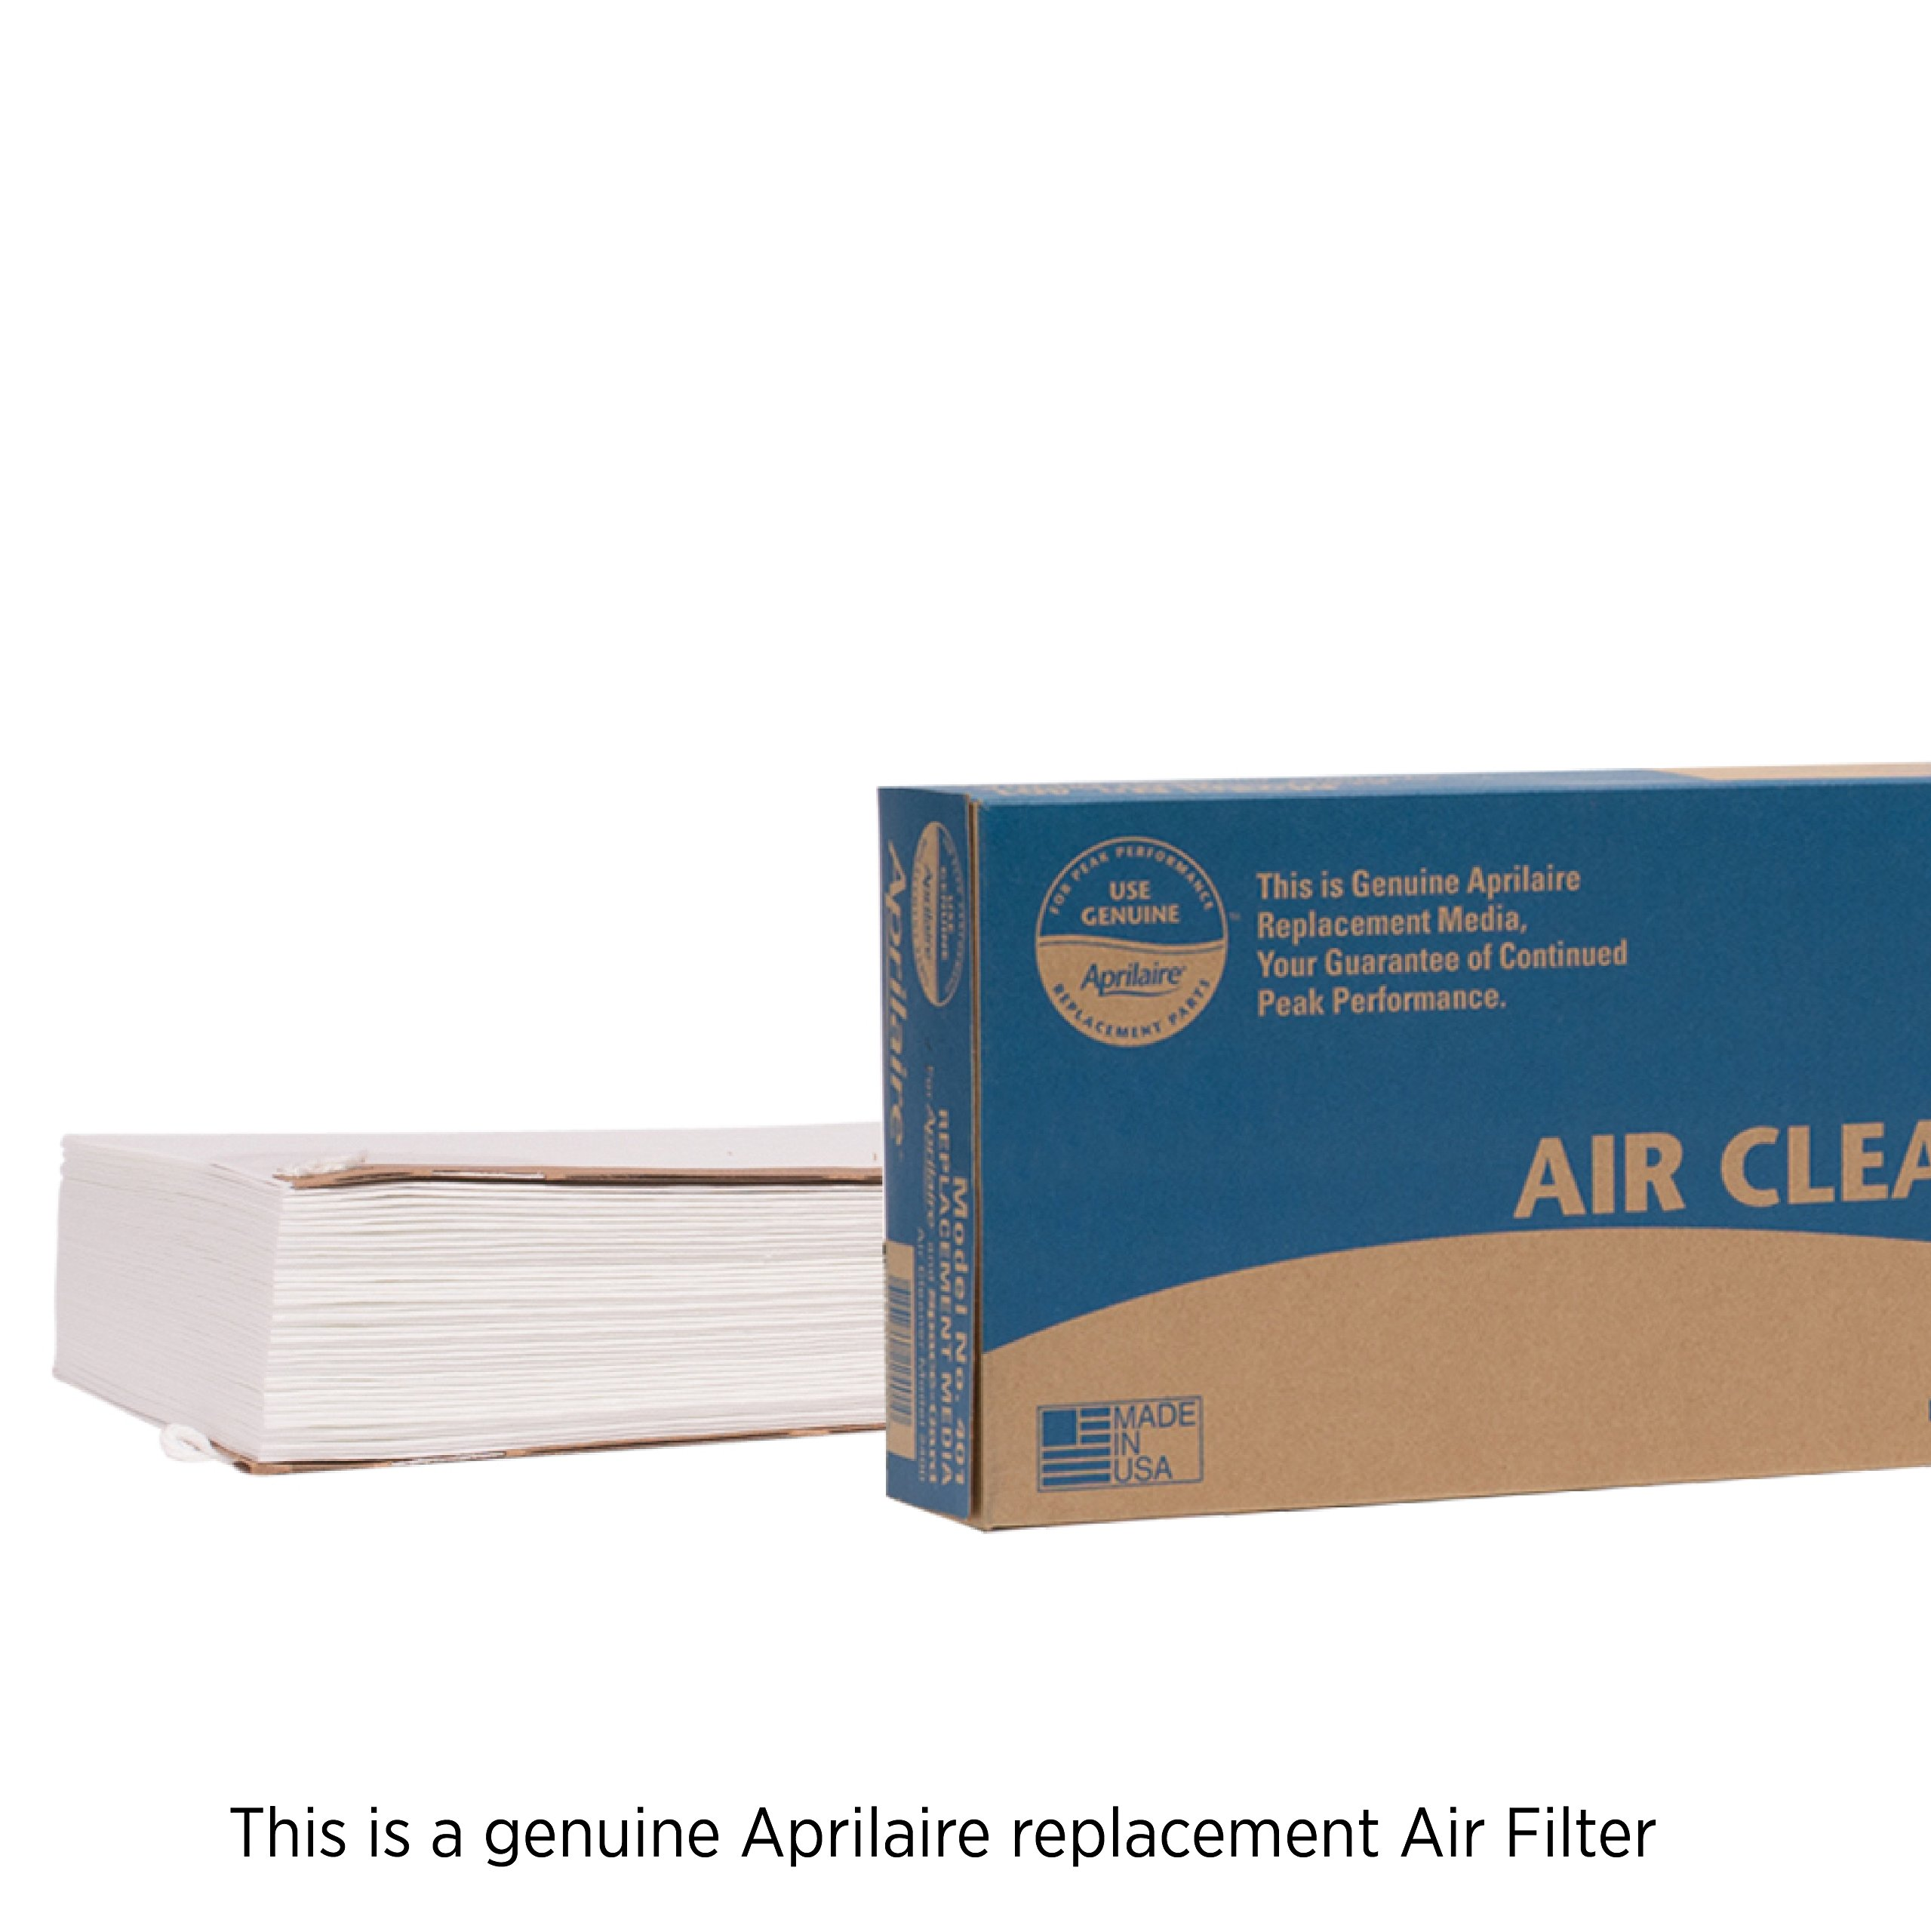 Aprilaire 401 Air Filter for Aprilaire Whole Home Air Purifier Models: 2400, Space-Gard 2400, MERV 10 (Pack of 1)